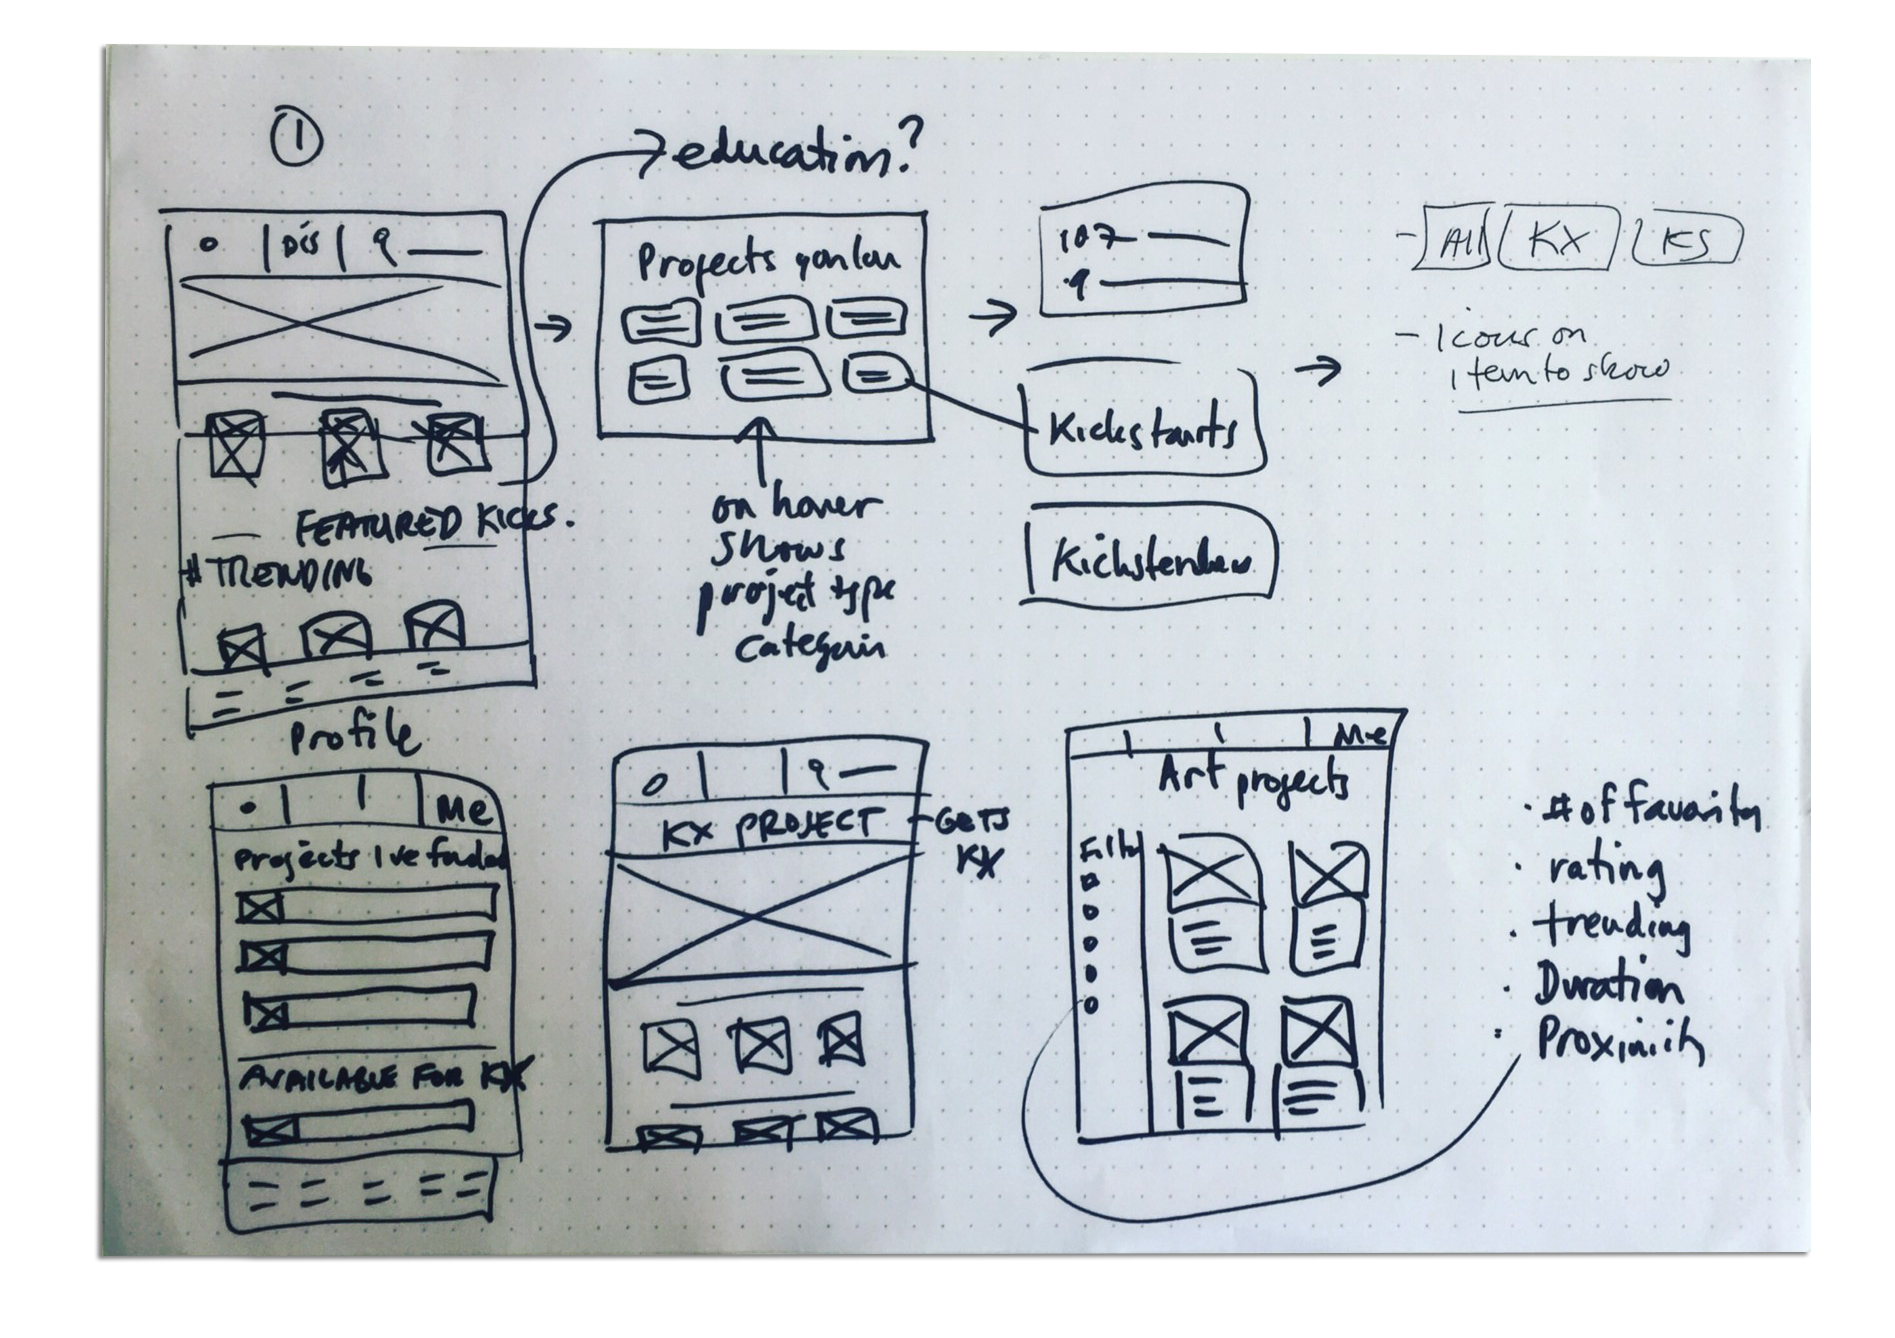 "Earlier sketches of the pages I was assigned to do for my team included the home, discovery and topic pages. ""Kickstender"" would be added to the custom navigation within the topic page, according to these sketches."